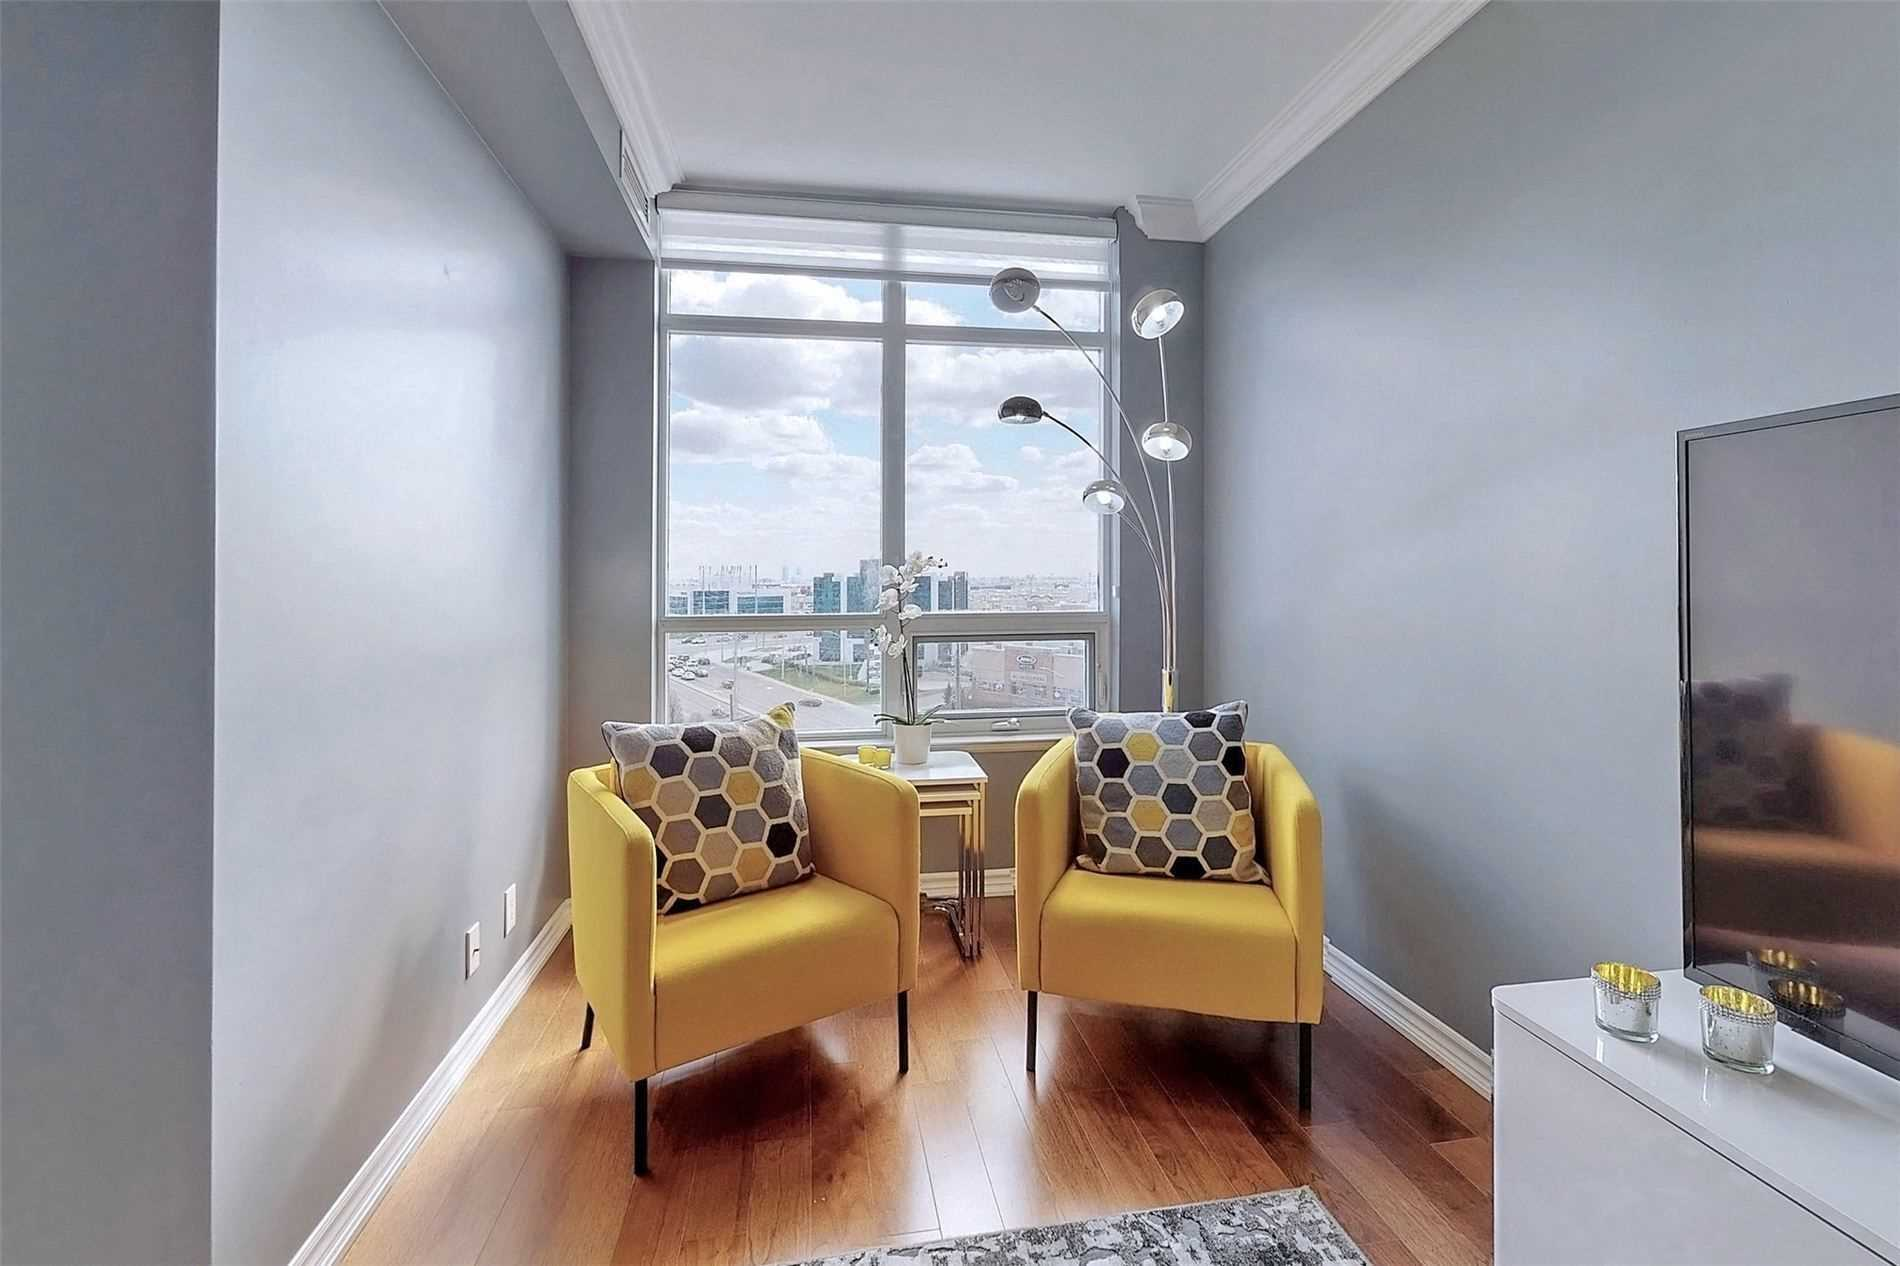 Image 30 of 33 showing inside of 1 Bedroom Condo Apt Apartment for Sale at 9235 Jane St Unit# 709, Vaughan L6A0J8